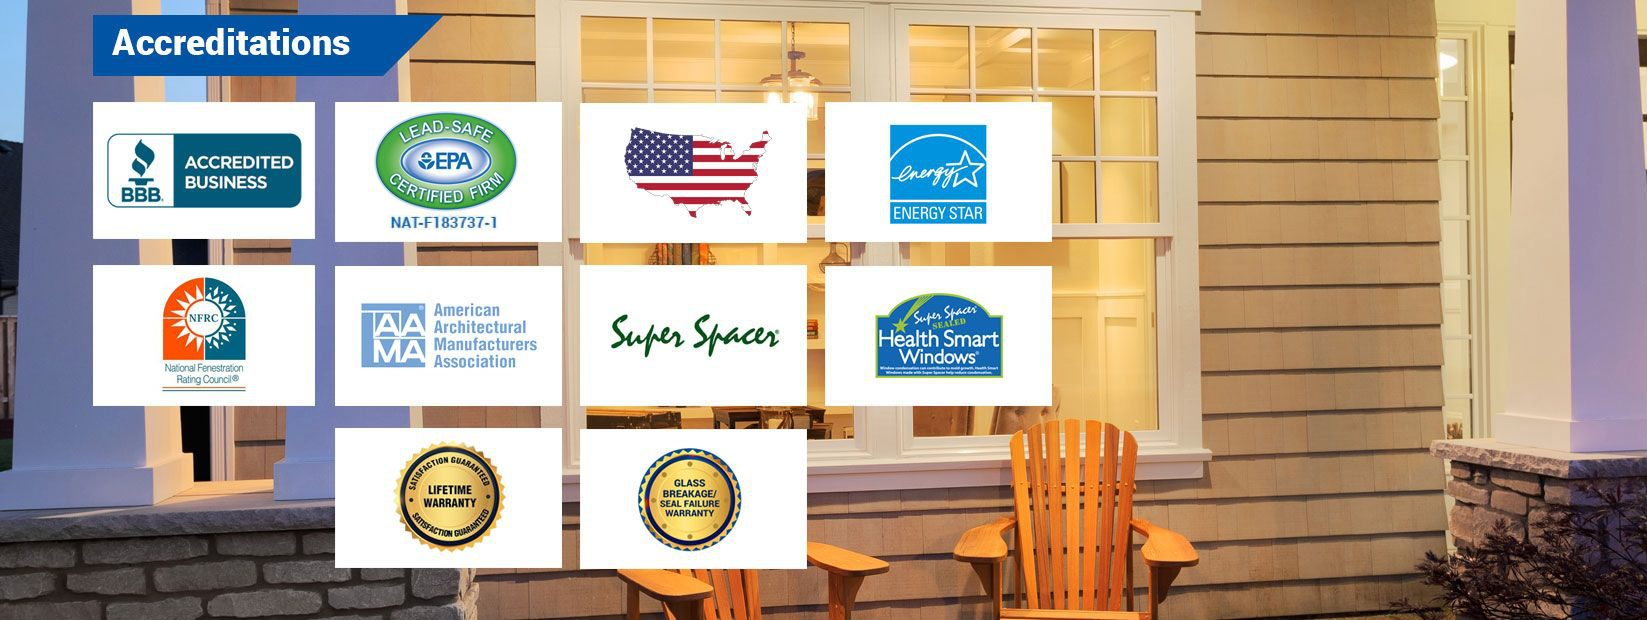 Window Town Accreditations